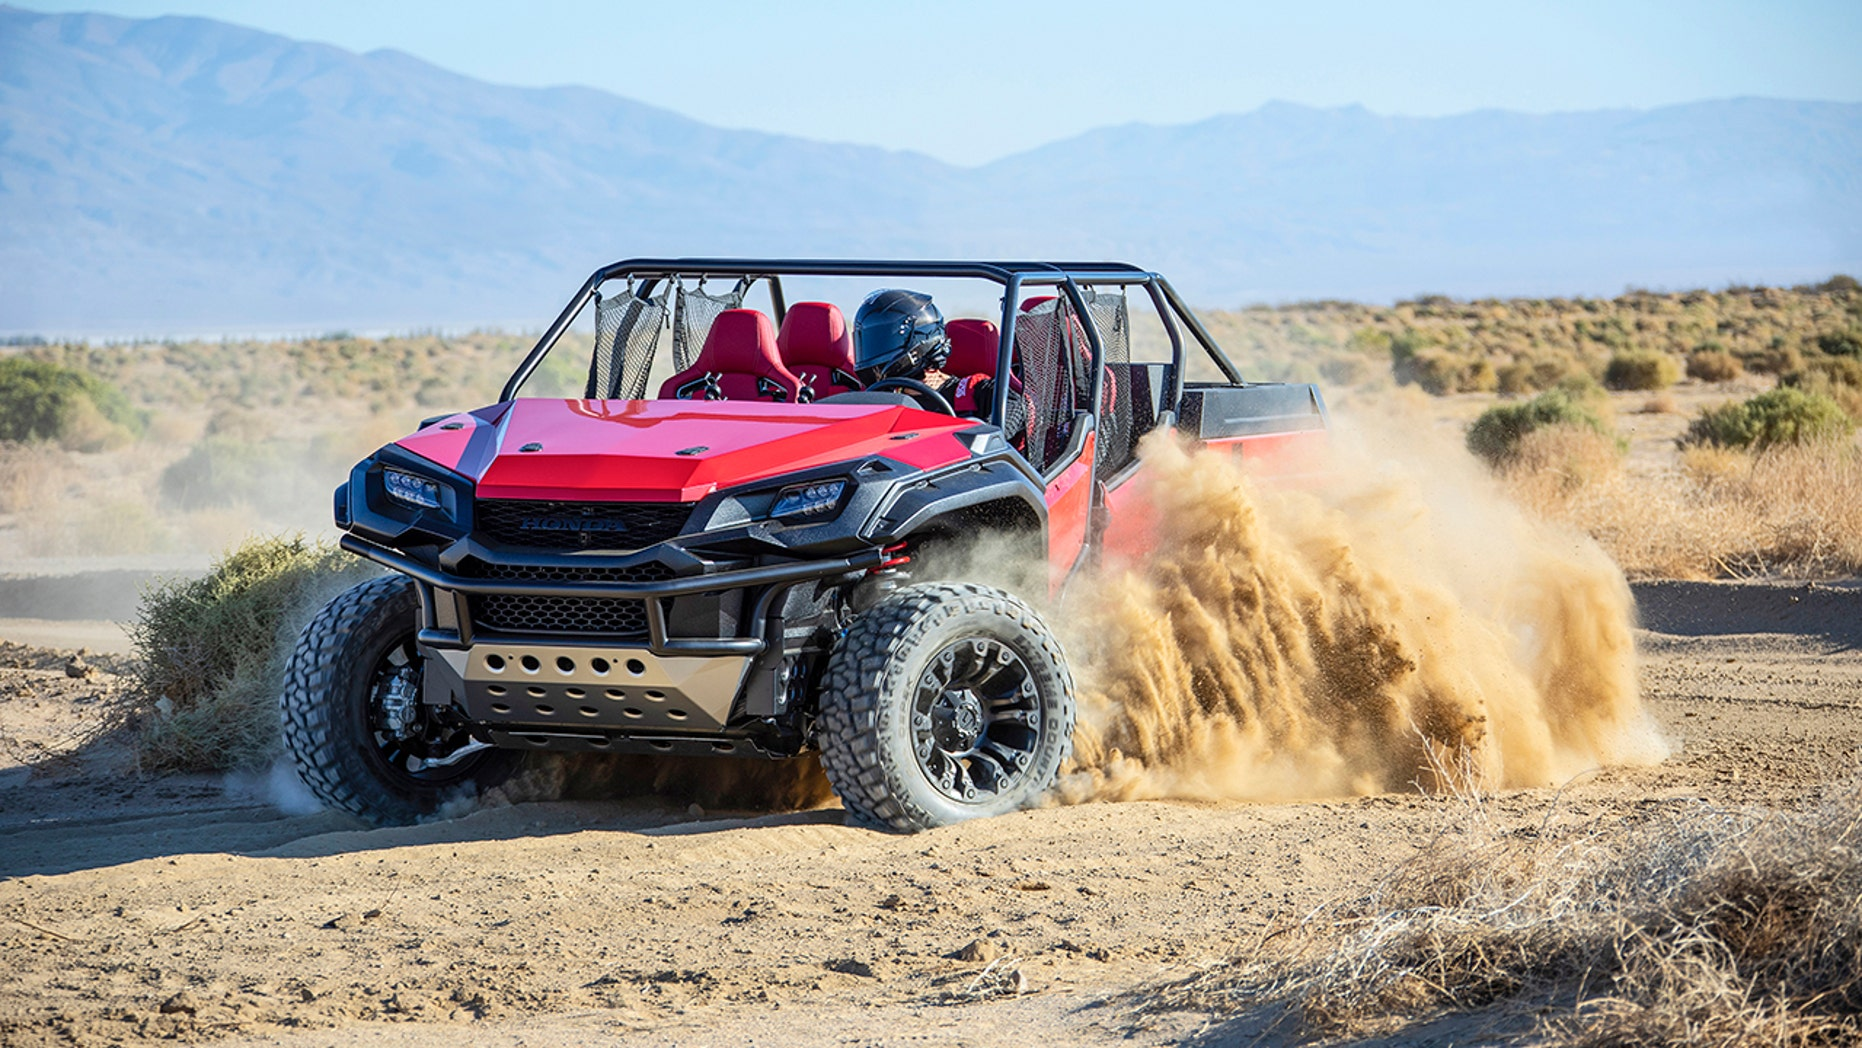 SEMA 2018: Honda unveils open-air adventure vehicle